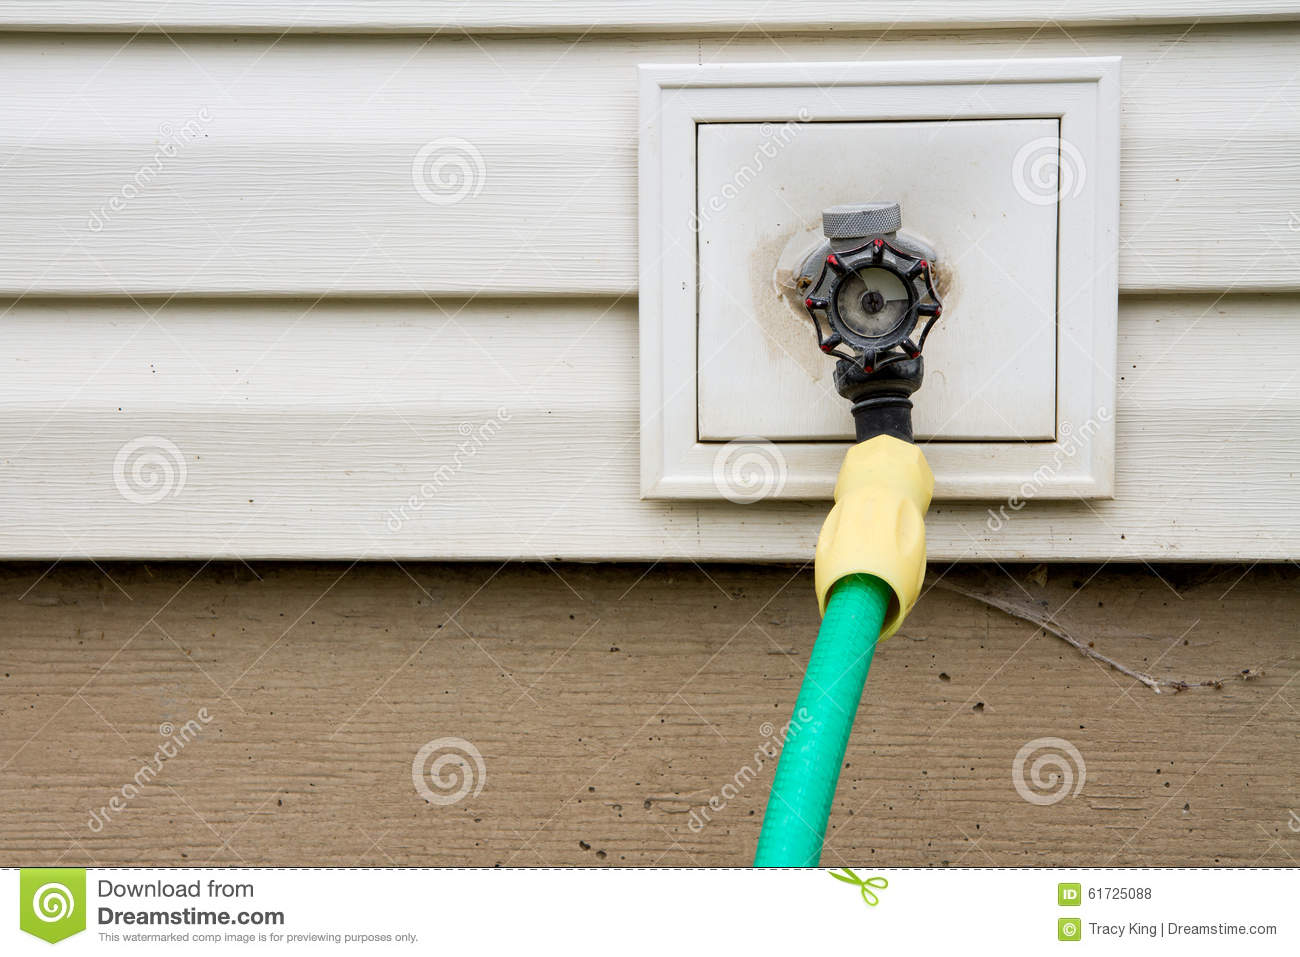 Outside water spigot stock photo. Image of household, brown - 8387674